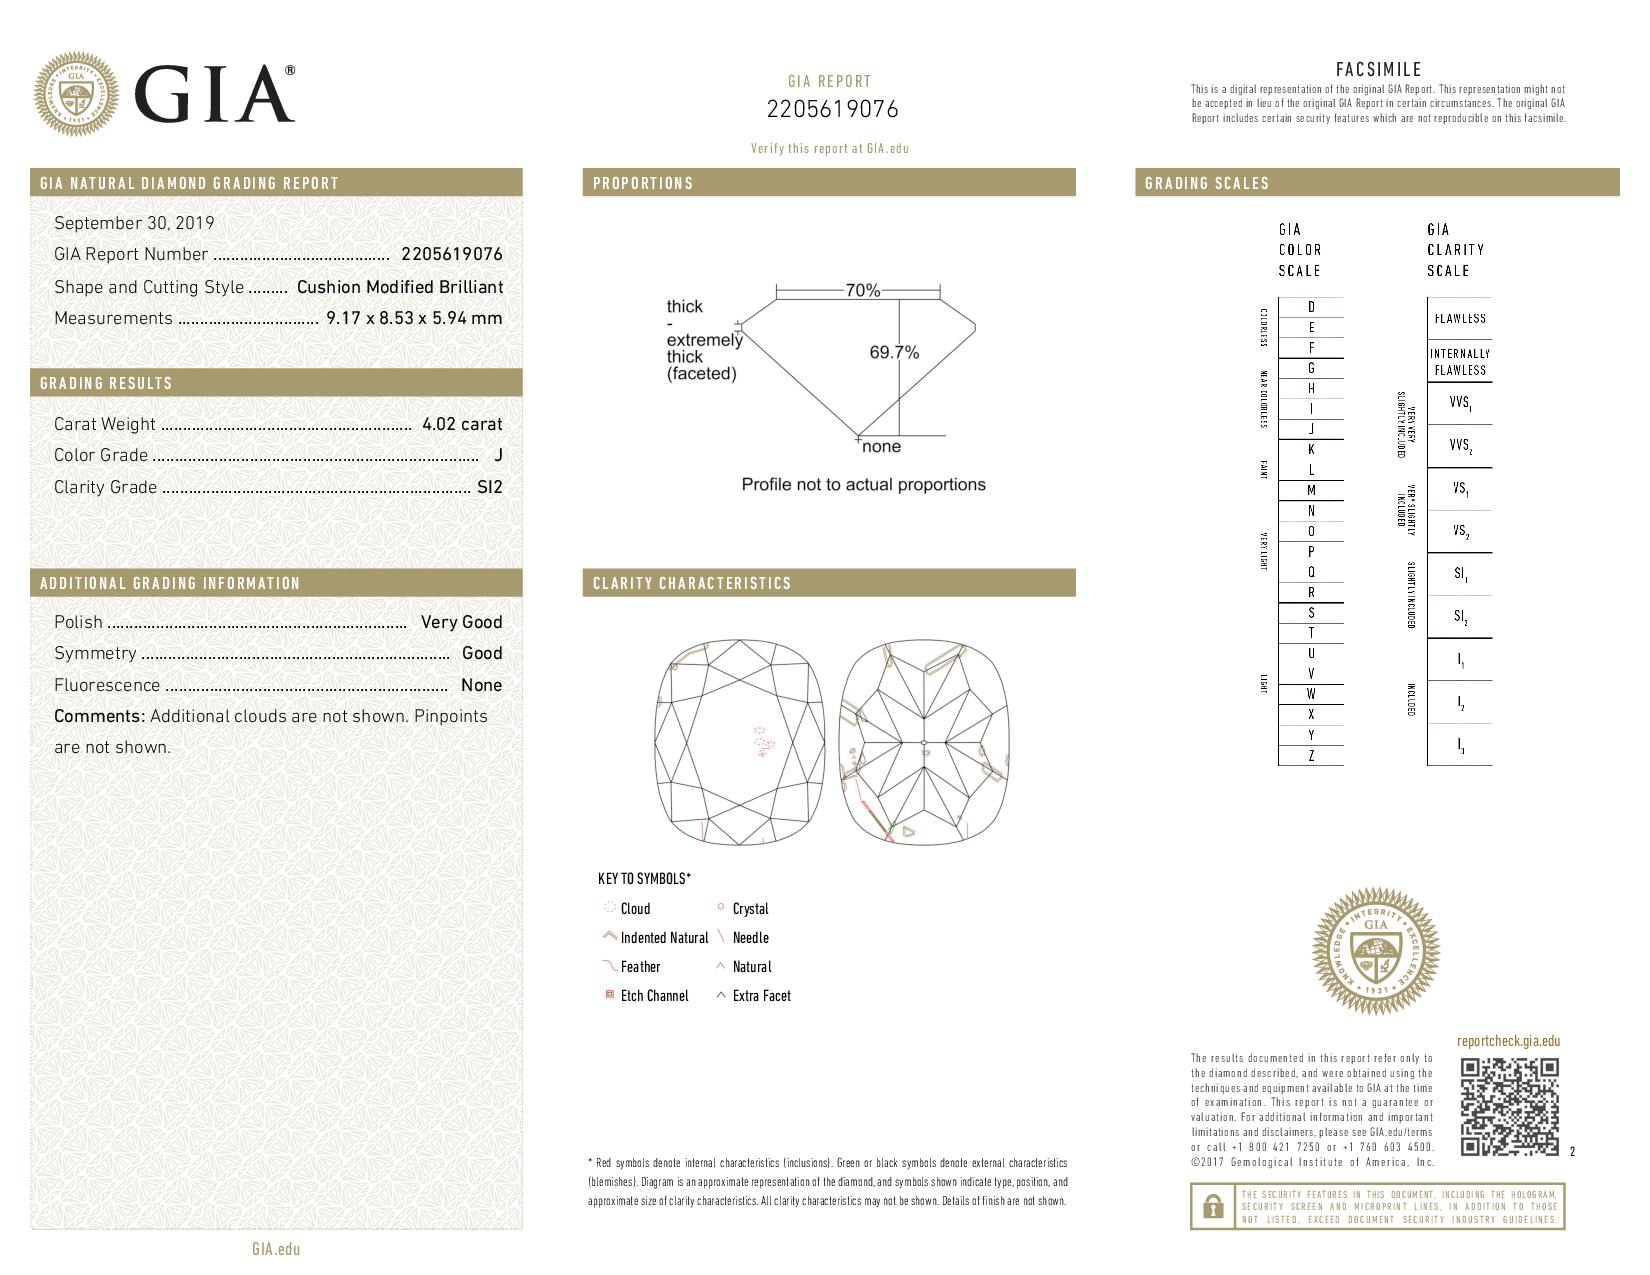 This is a 4.02 carat cushion shape, J color, SI2 clarity natural diamond accompanied by a GIA grading report.